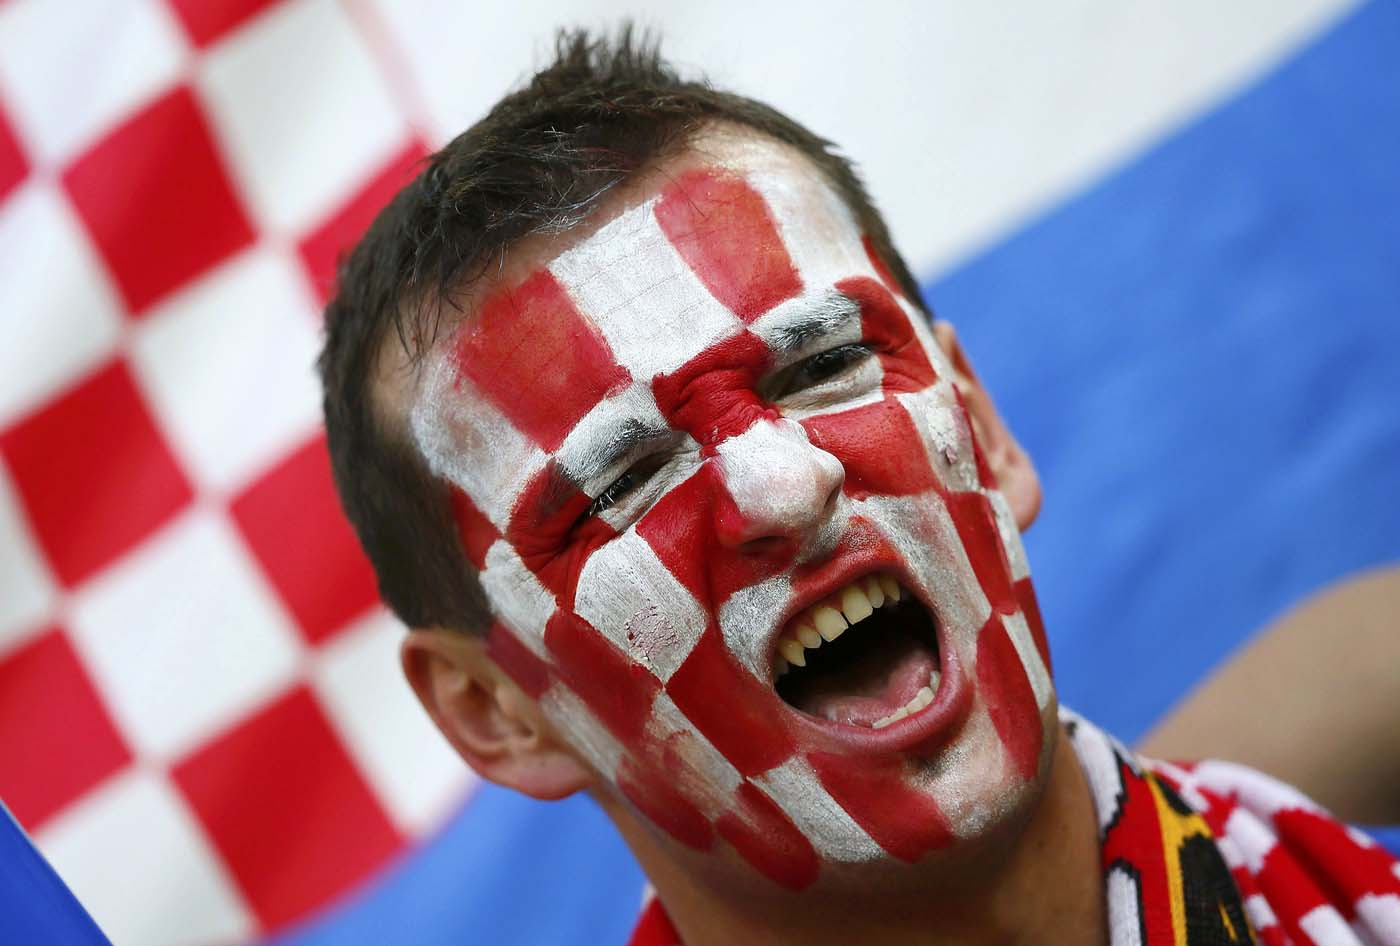 A fan of Croatia cheers before their Group C Euro 2012 soccer match against Spain at the PGE Arena in Gdansk June 18, 2012. (Kai Pfaffenbach/Reuters)